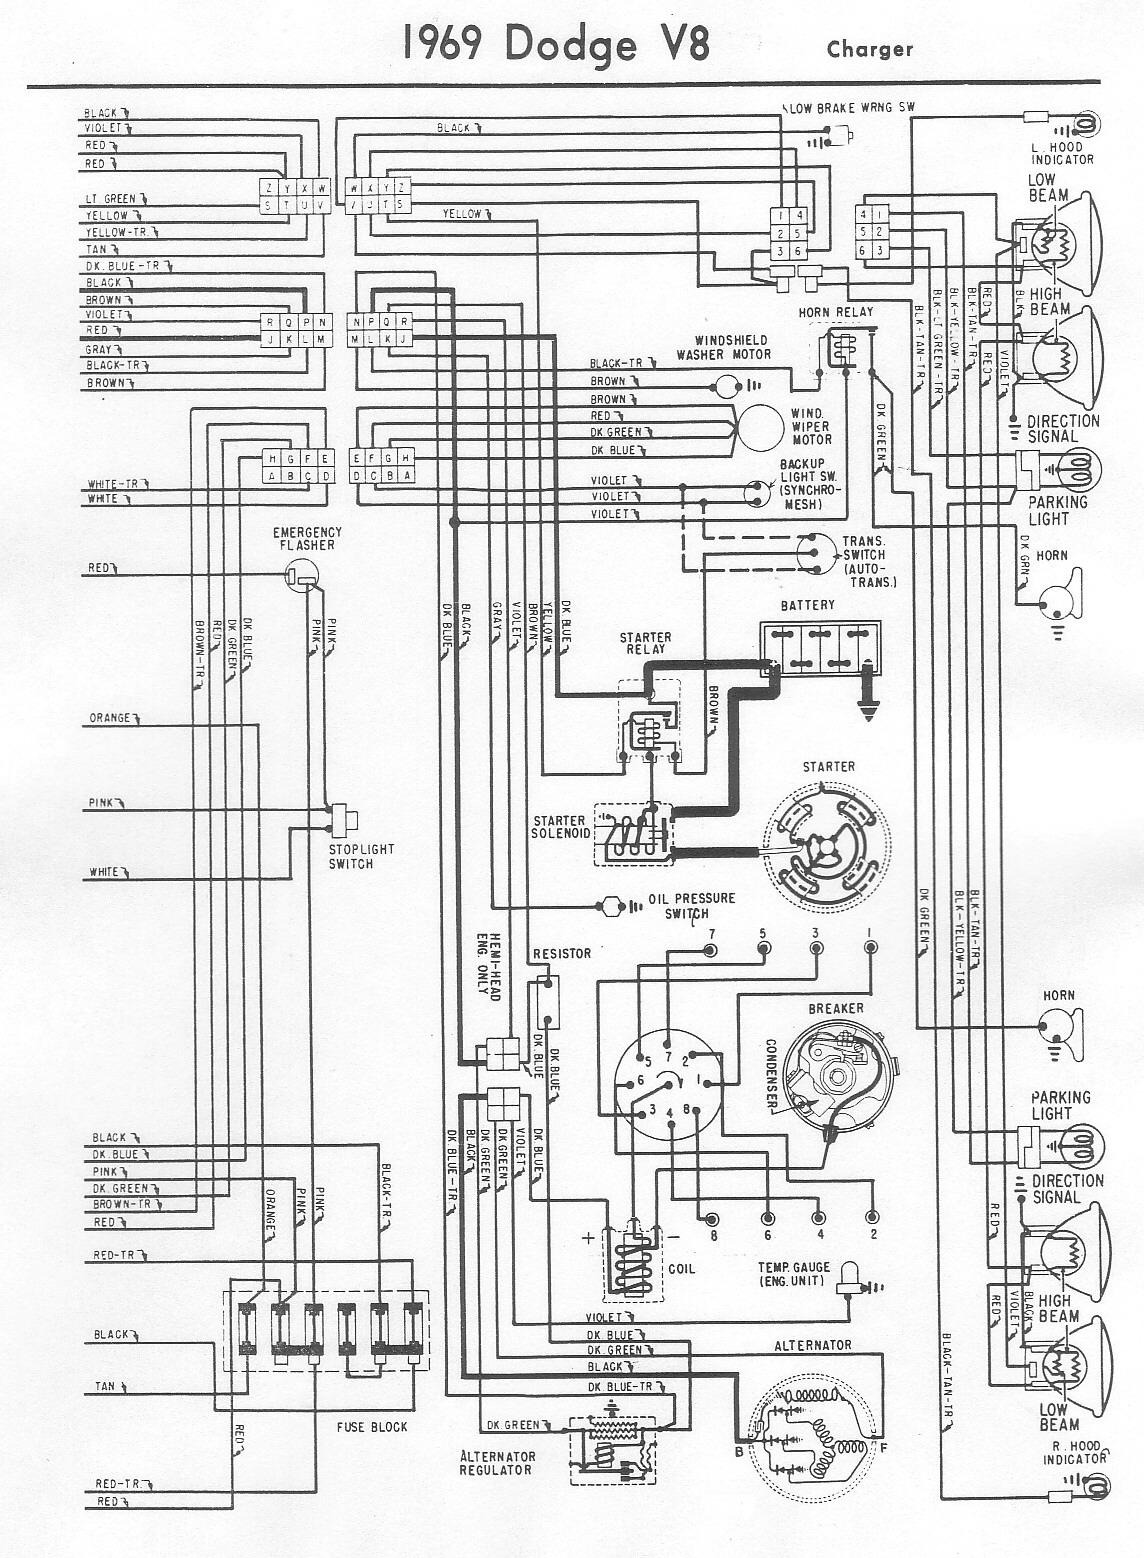 i have no spark on my 1969 dodge charger 1970 plymouth turn signal wiring diagram 2000 impala turn signal wiring diagram #12